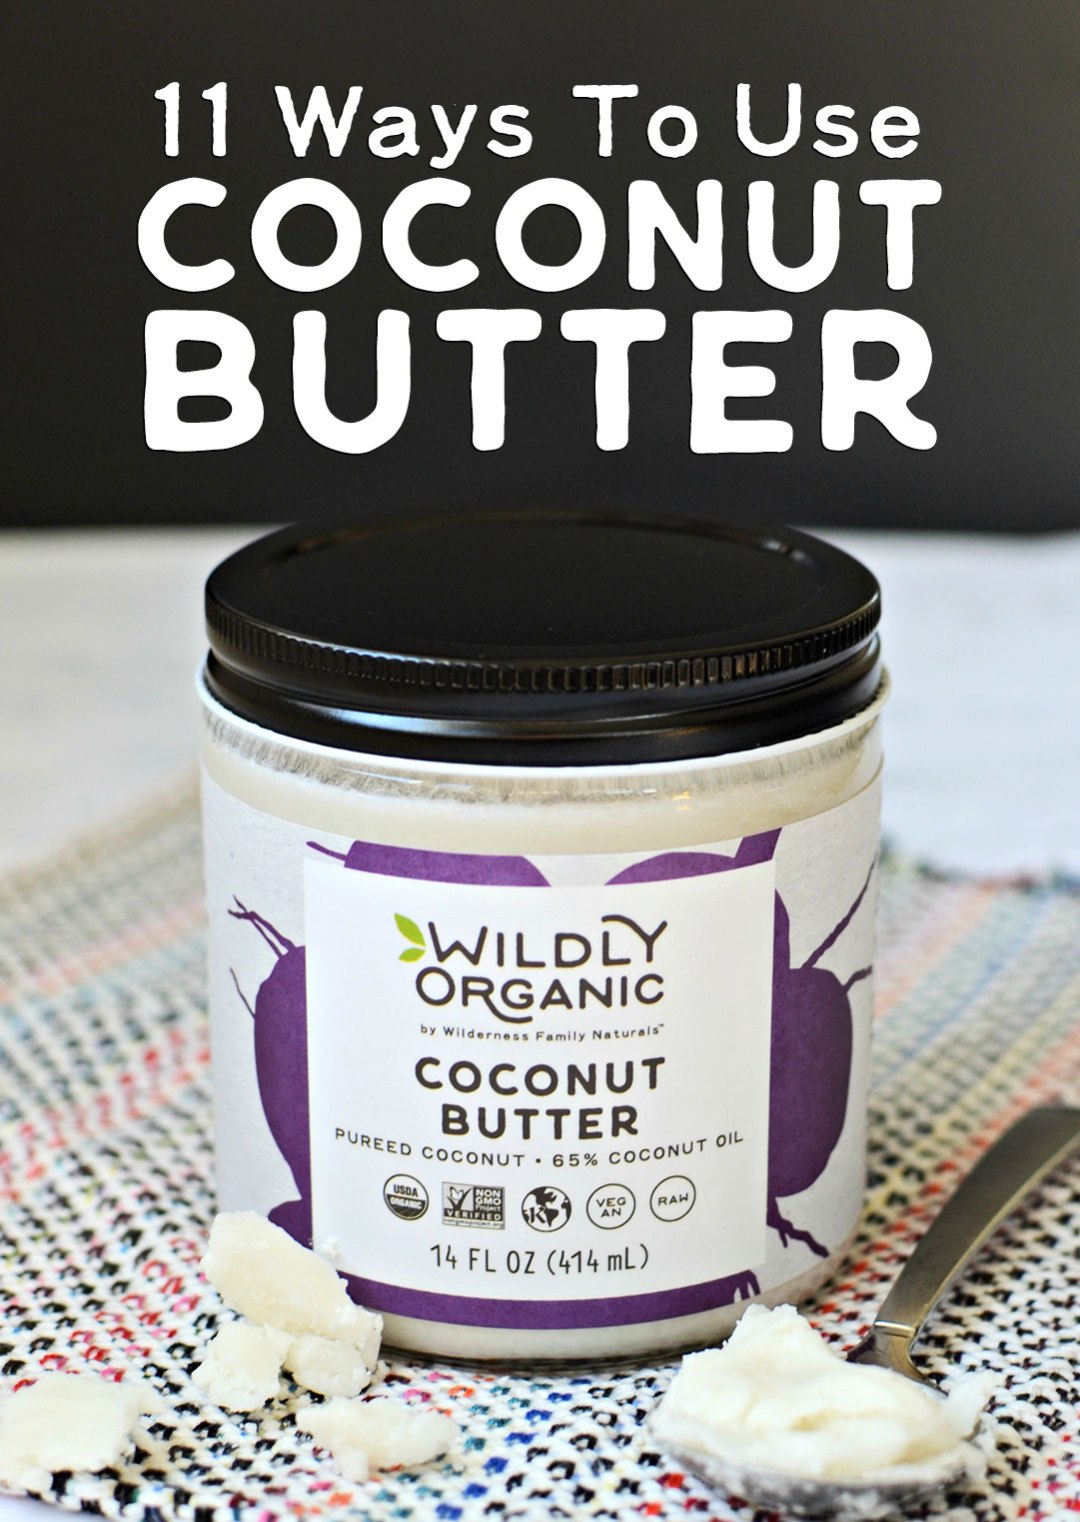 11 Ways To Use Coconut Butter | Coconut butter (or manna) is a delicious, versatile superfood that can be easily incorporated into your nourishing diet. Add dairy-free creaminess to your coffee, mix it into a smoothie, or drizzle it over fruit -- there are so many ways to use this healthy fat! You'll be surprised at #10 and #11! | WildlyOrganic.com